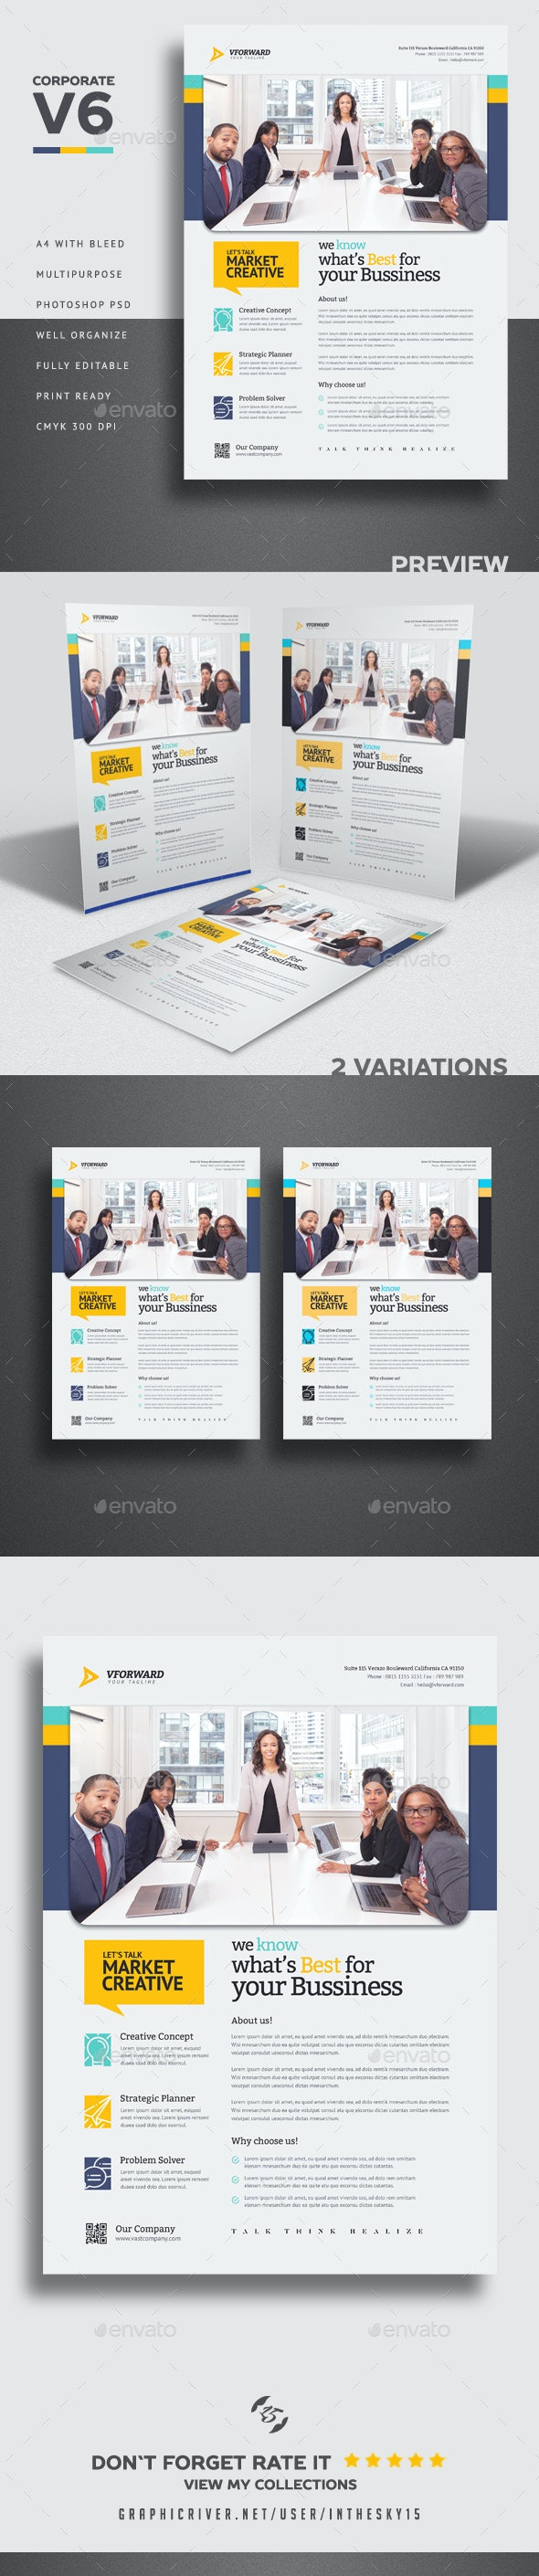 Corporate V6 Flyer - Corporate Flyers